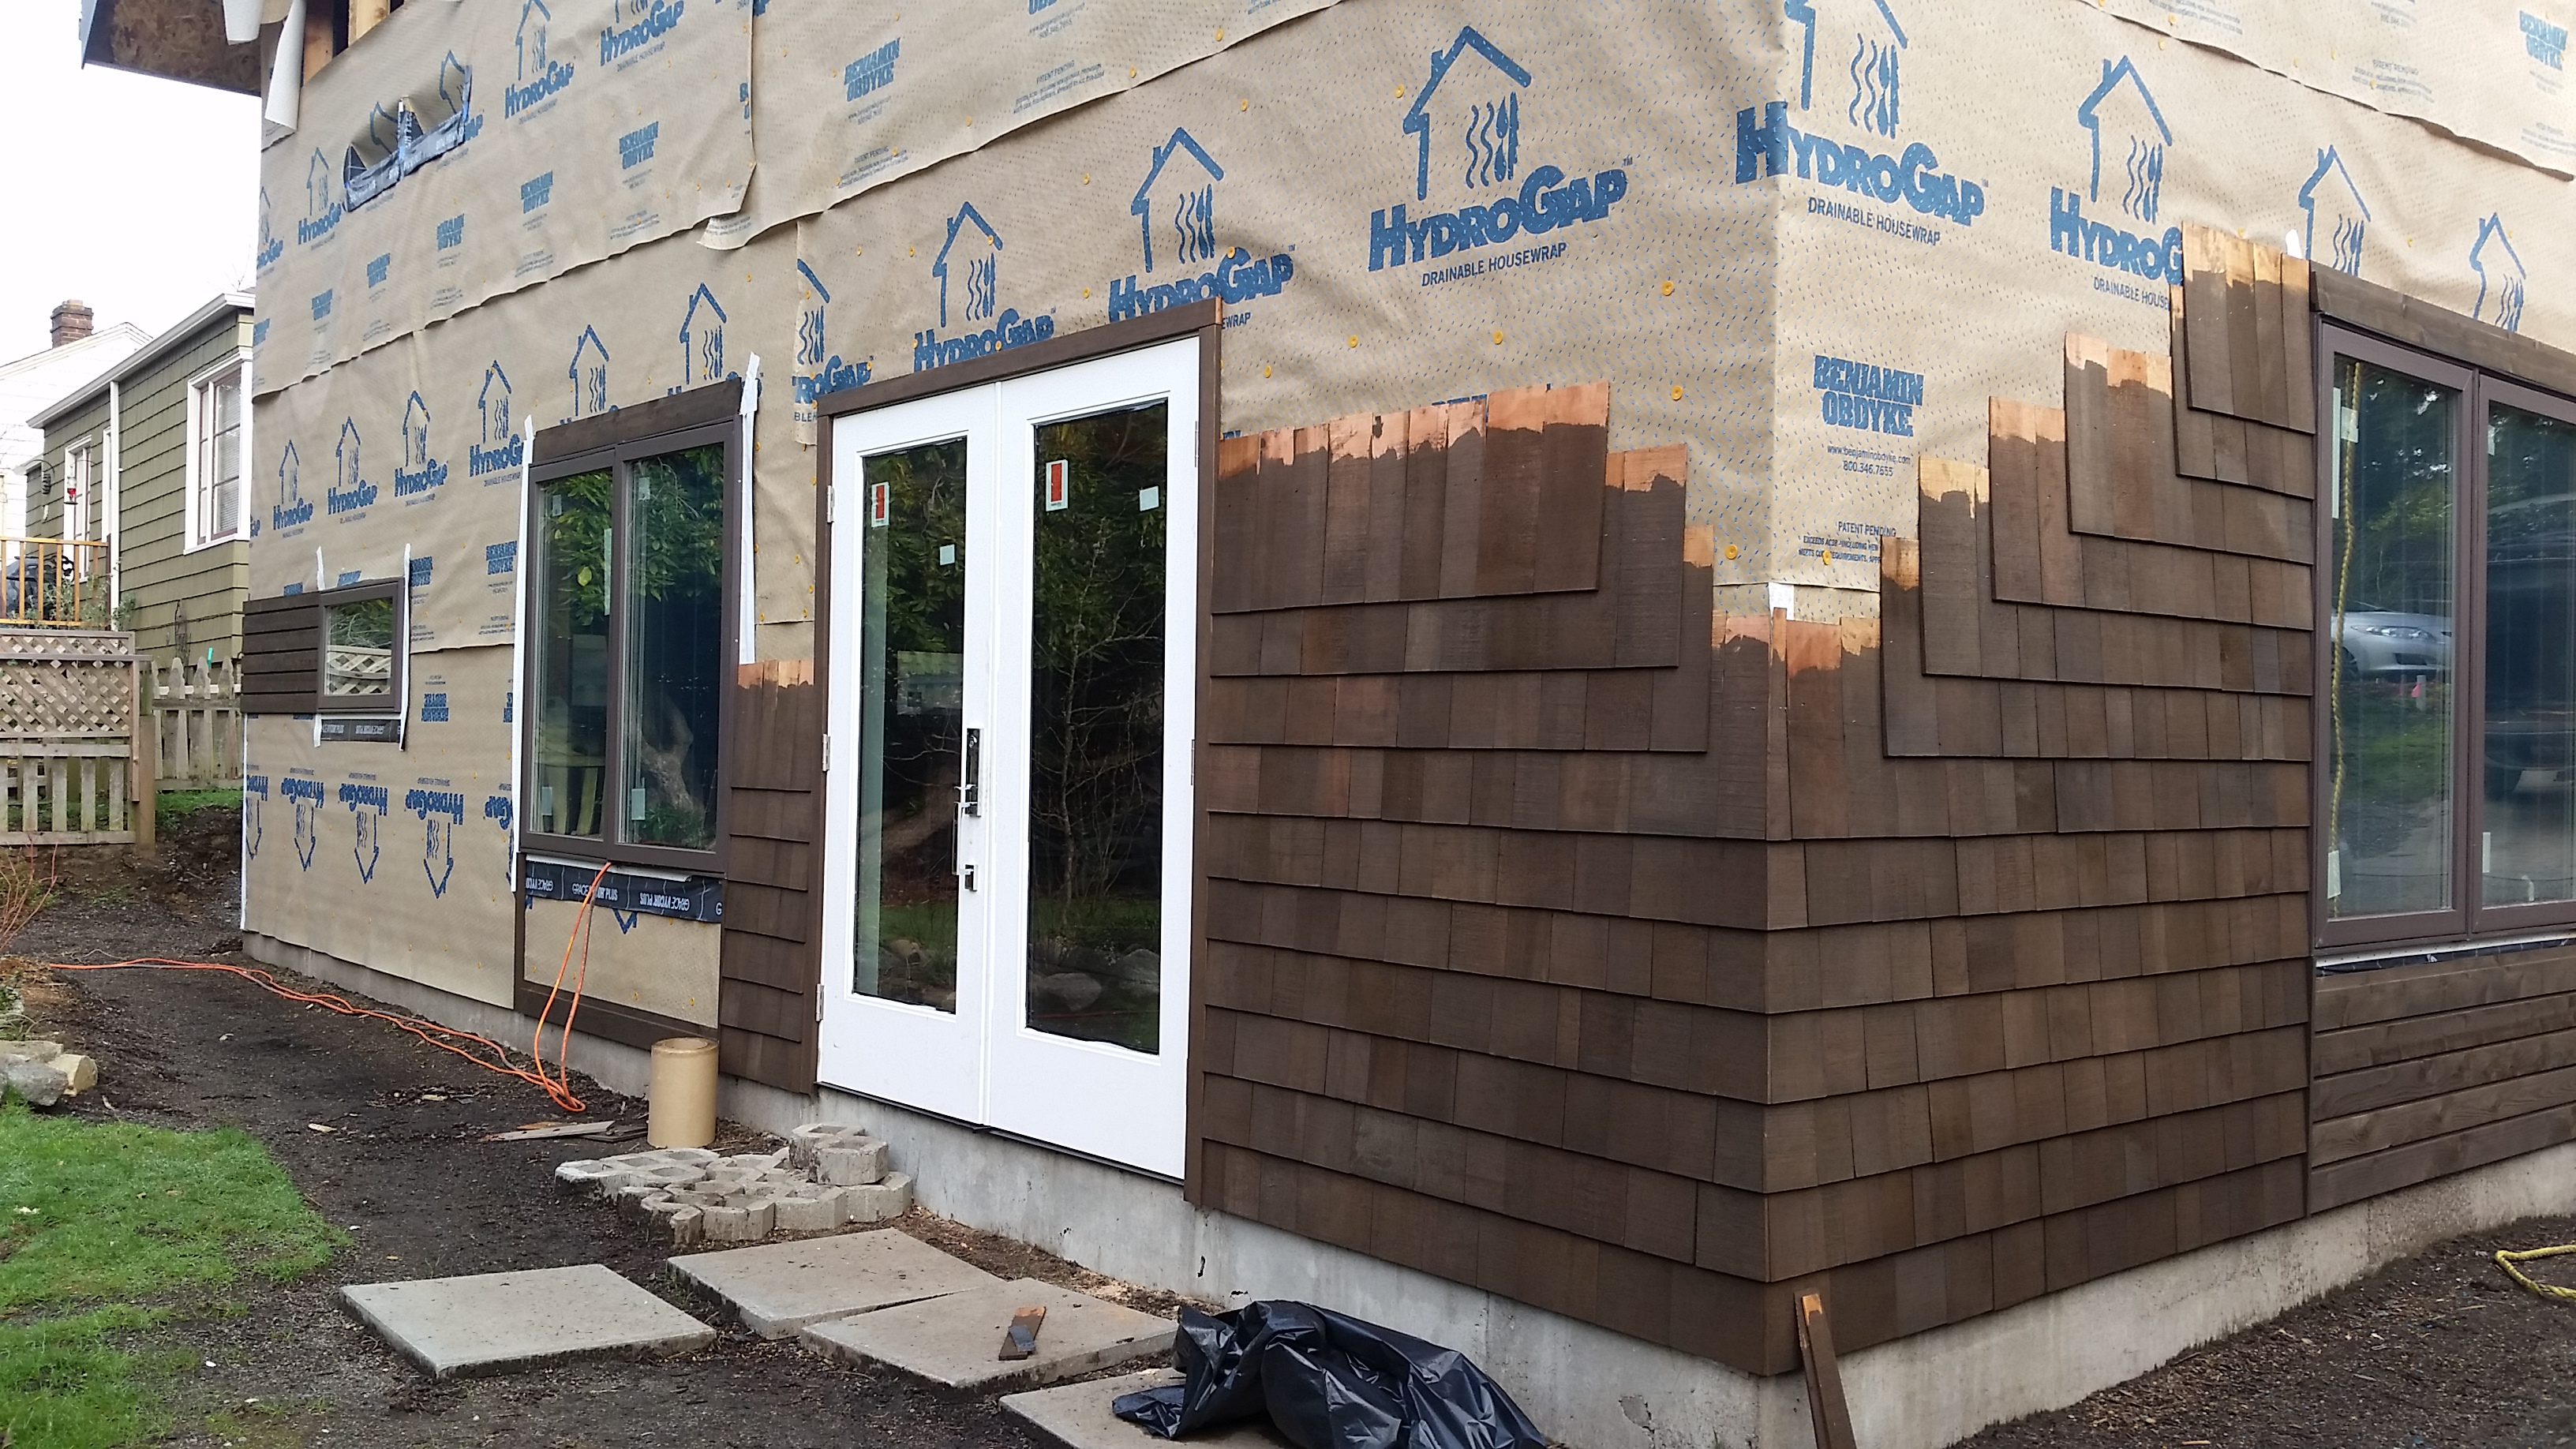 Seattle Remodeling Company Relies on HydroGap, Breaks into Homebuilding Market with NetZero House